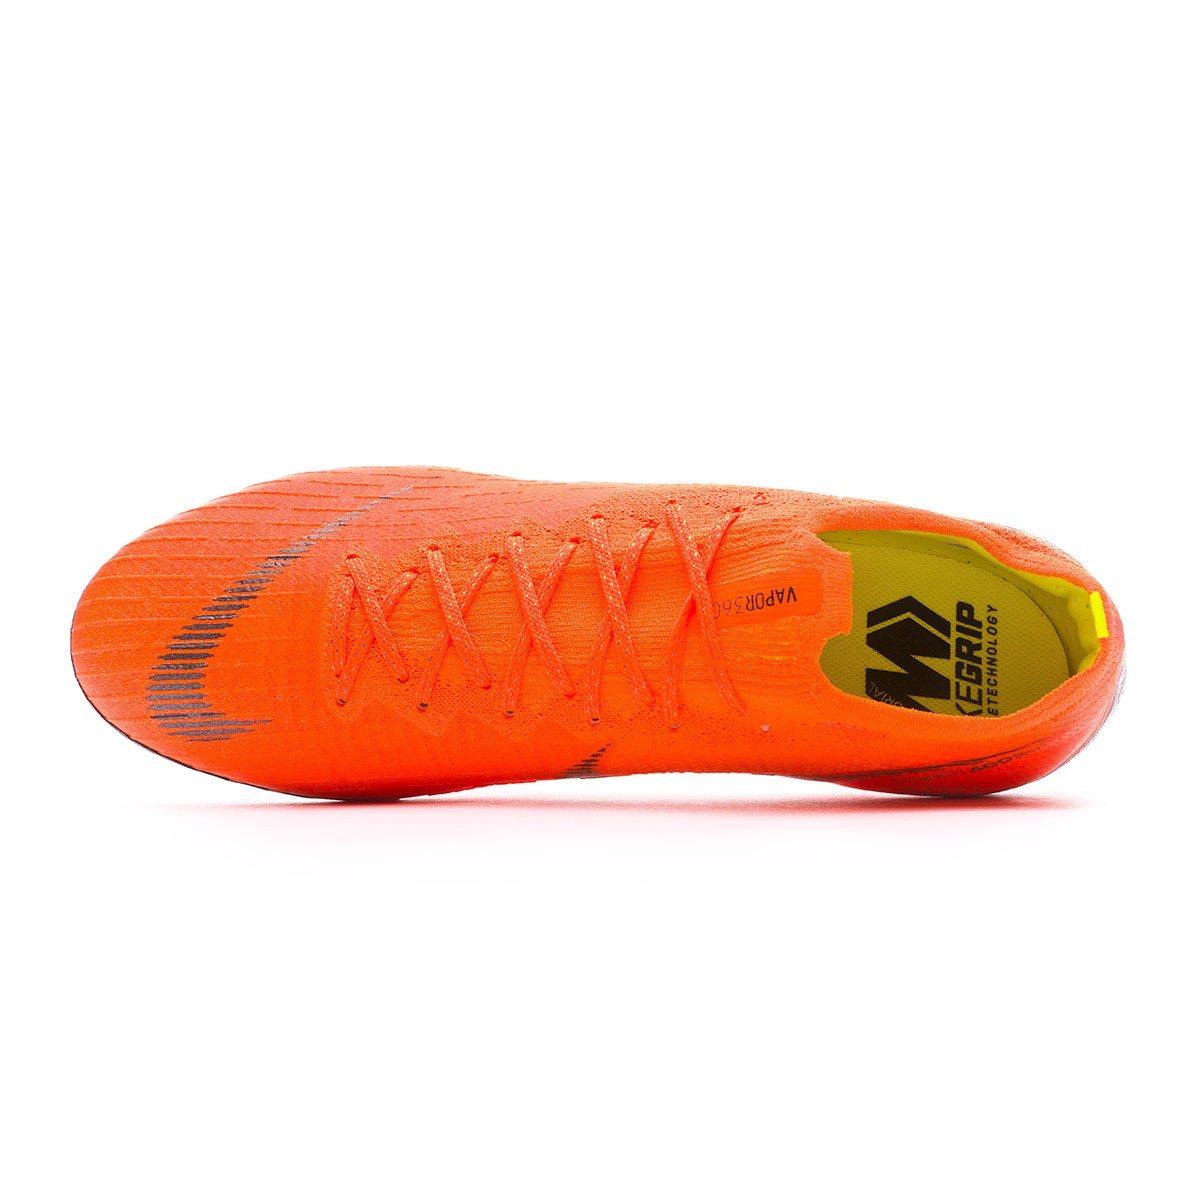 c71d9adb9d9 ... Bota Mercurial Vapor XII Elite AG-Pro Total orange-Black-Volt.  CATEGORY. Football Boots · Nike